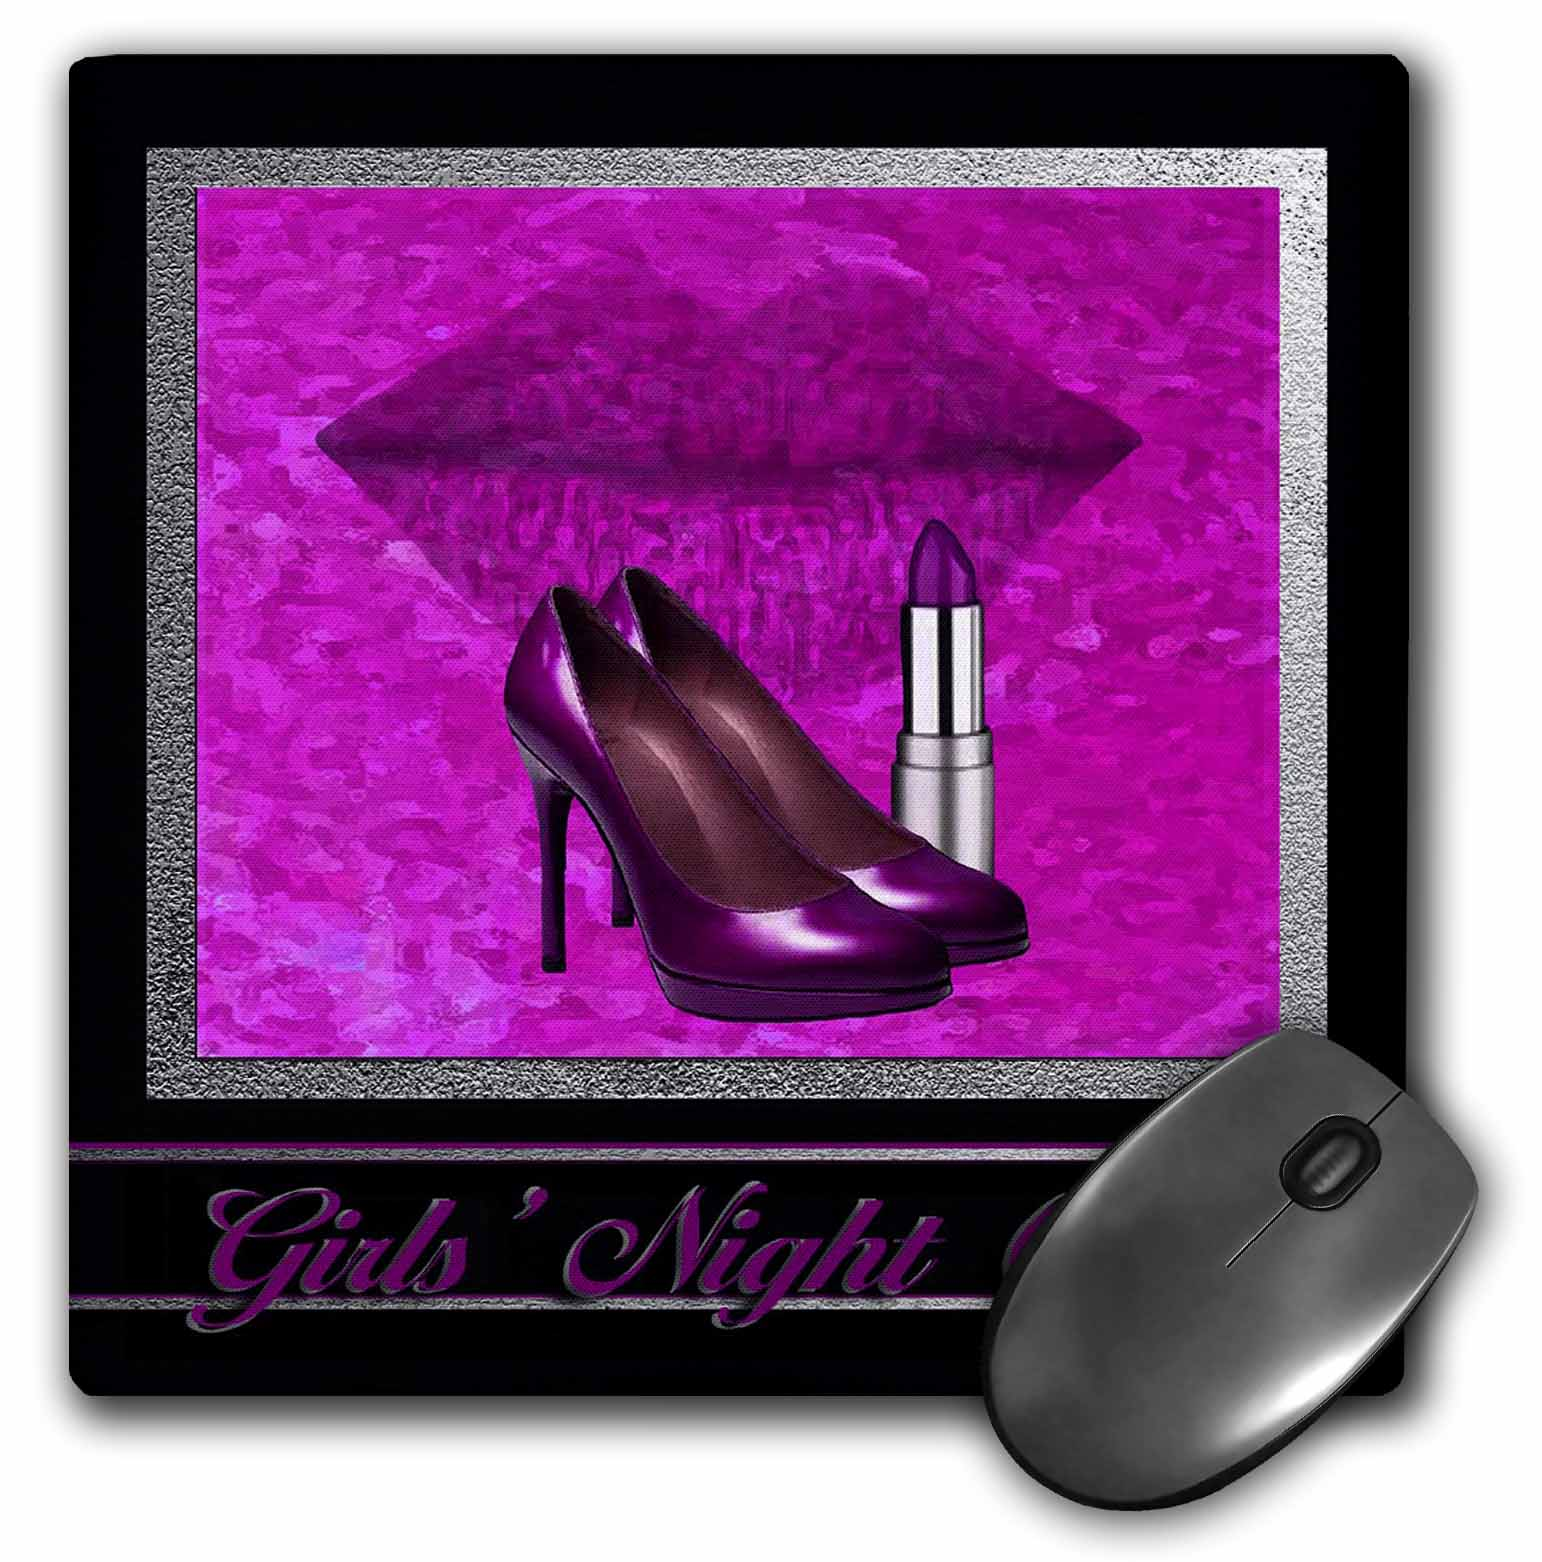 Image of 3dRose Bachelorette Party, Girls Night Out, Pink High Heels, Lips and Lipstick, Mouse Pad, 8 by 8 inches